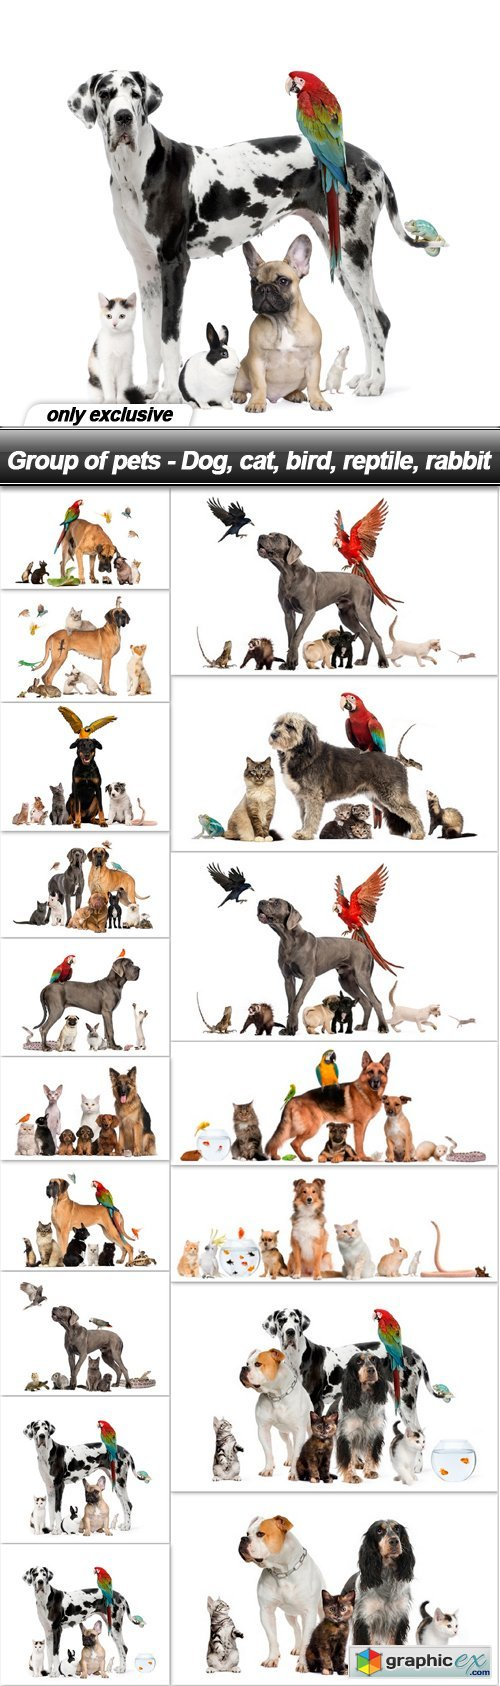 Group of pets - Dog, cat, bird, reptile, rabbit - 17 UHQ JPEG